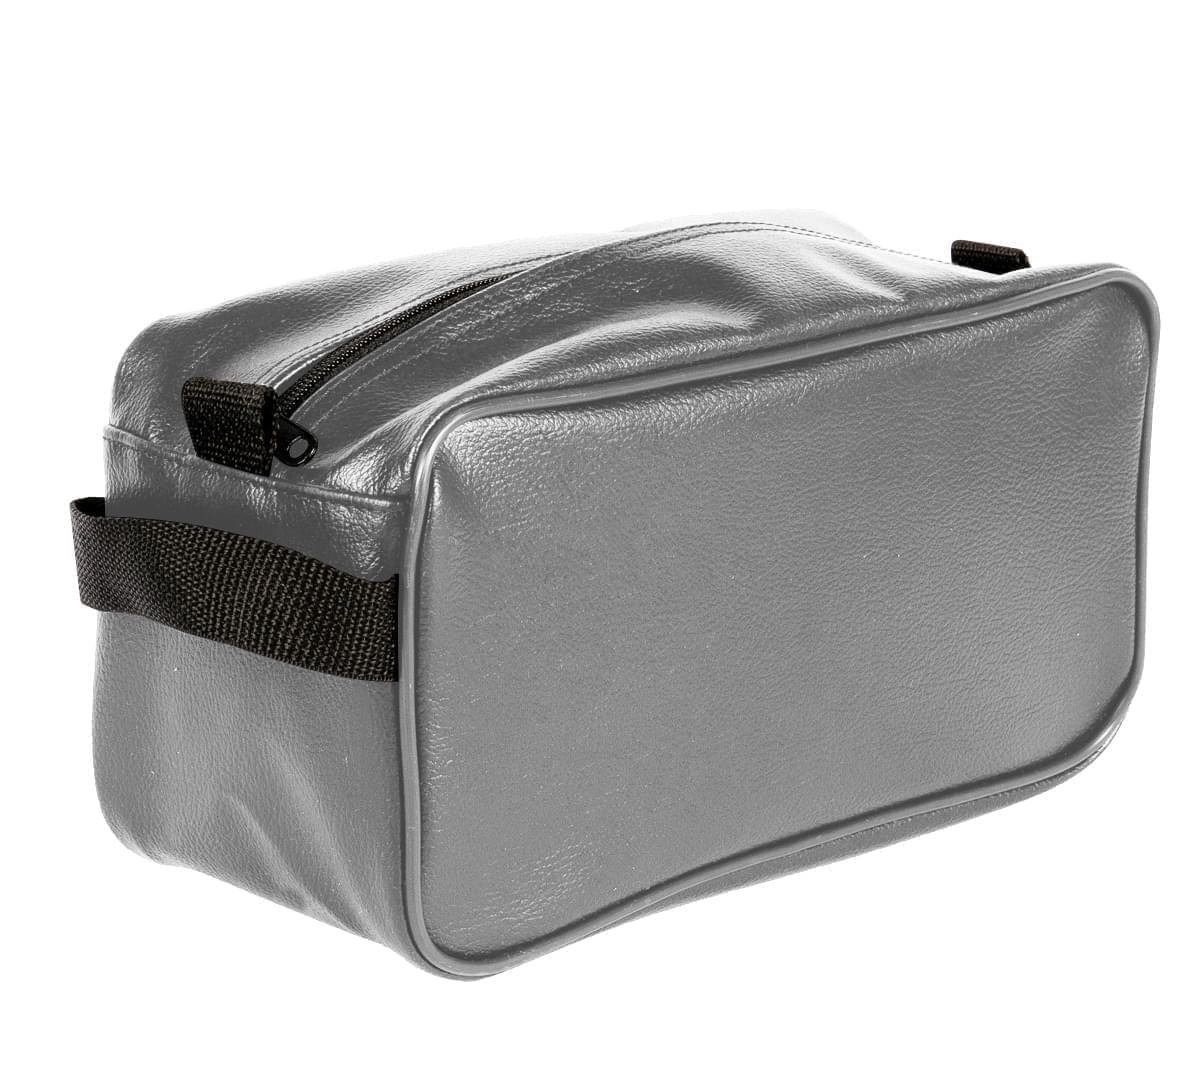 USA Made Cosmetic & Toiletry Cases, Grey-Black, 3000996-A1R